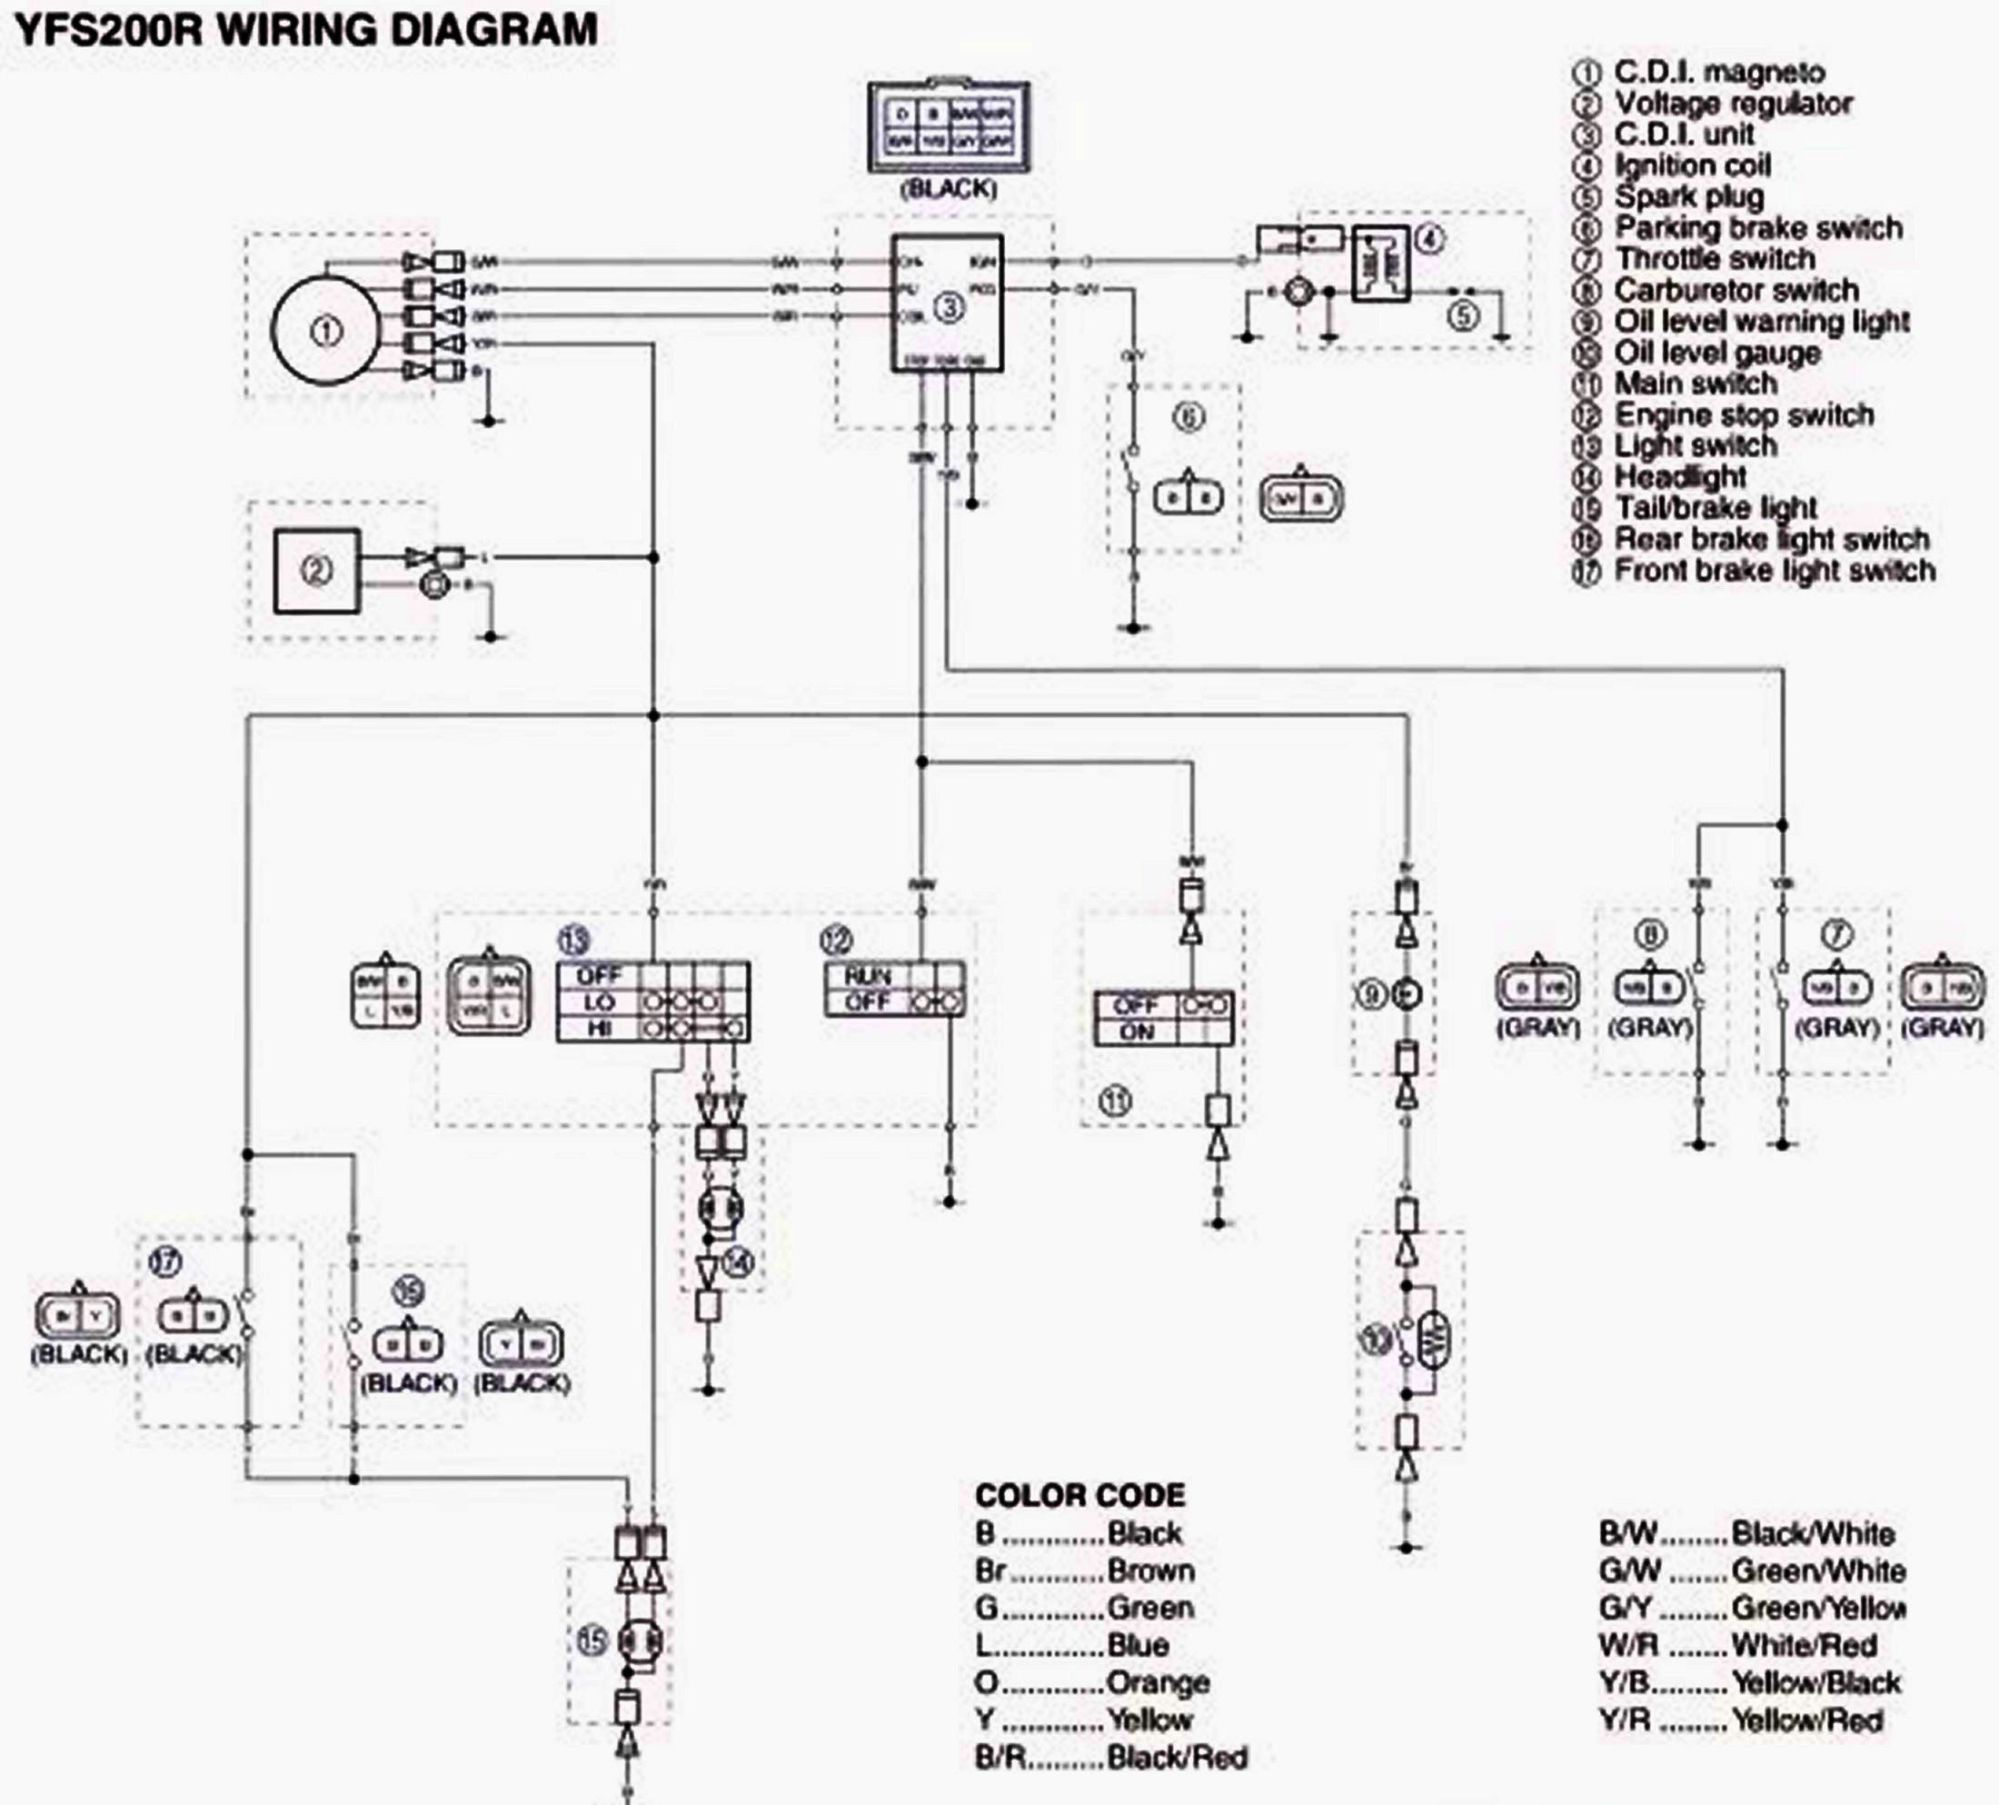 hight resolution of 1979 yamaha 250 wiring diagram wiring library rh 31 evitta de 1979 yamaha 650 special wiring